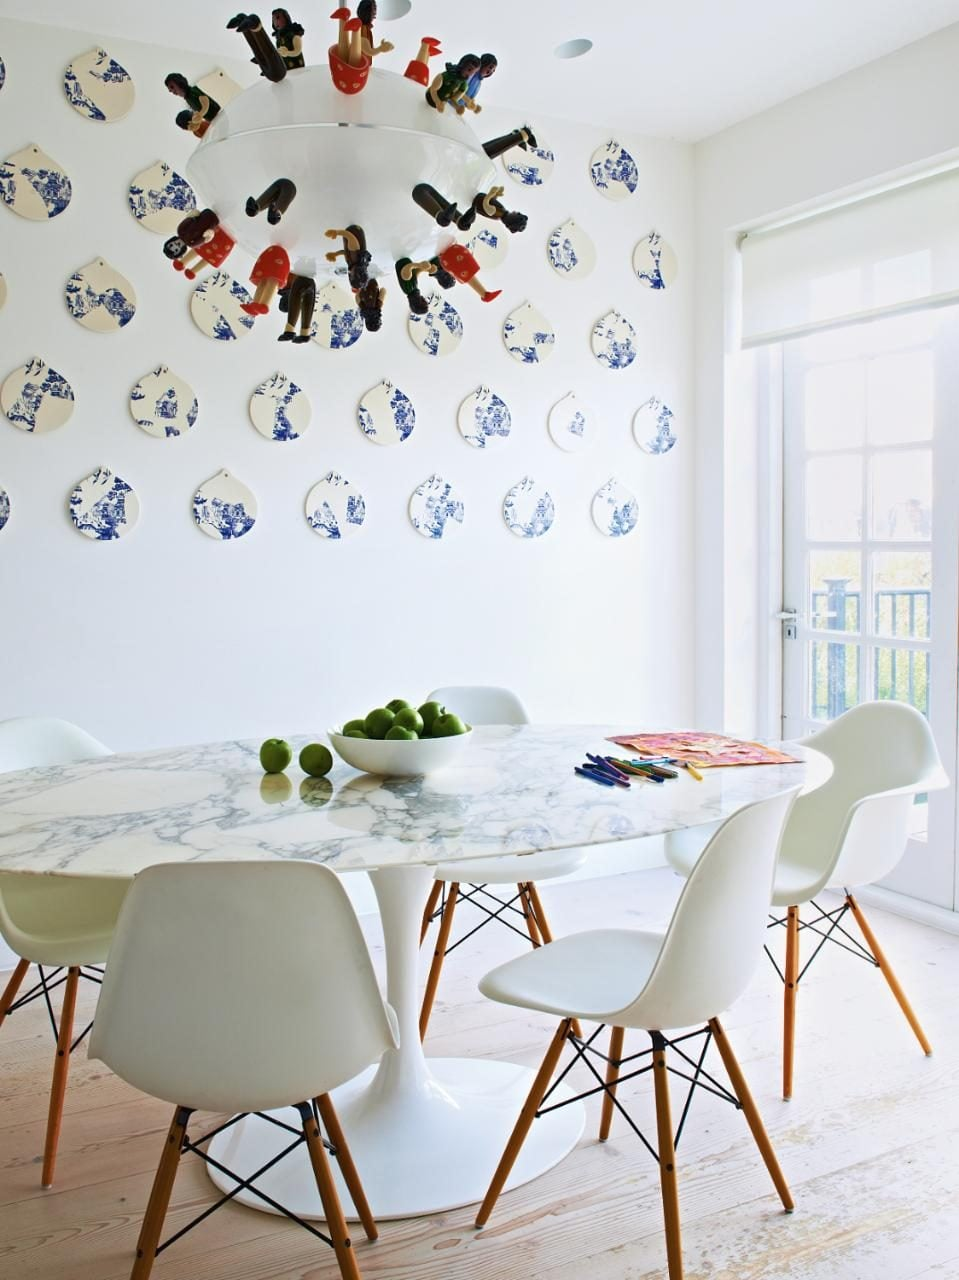 The kitchen wall displays a Livia Marin mural, and a glass pendant light features replica Brazilian dolls for a fun touch